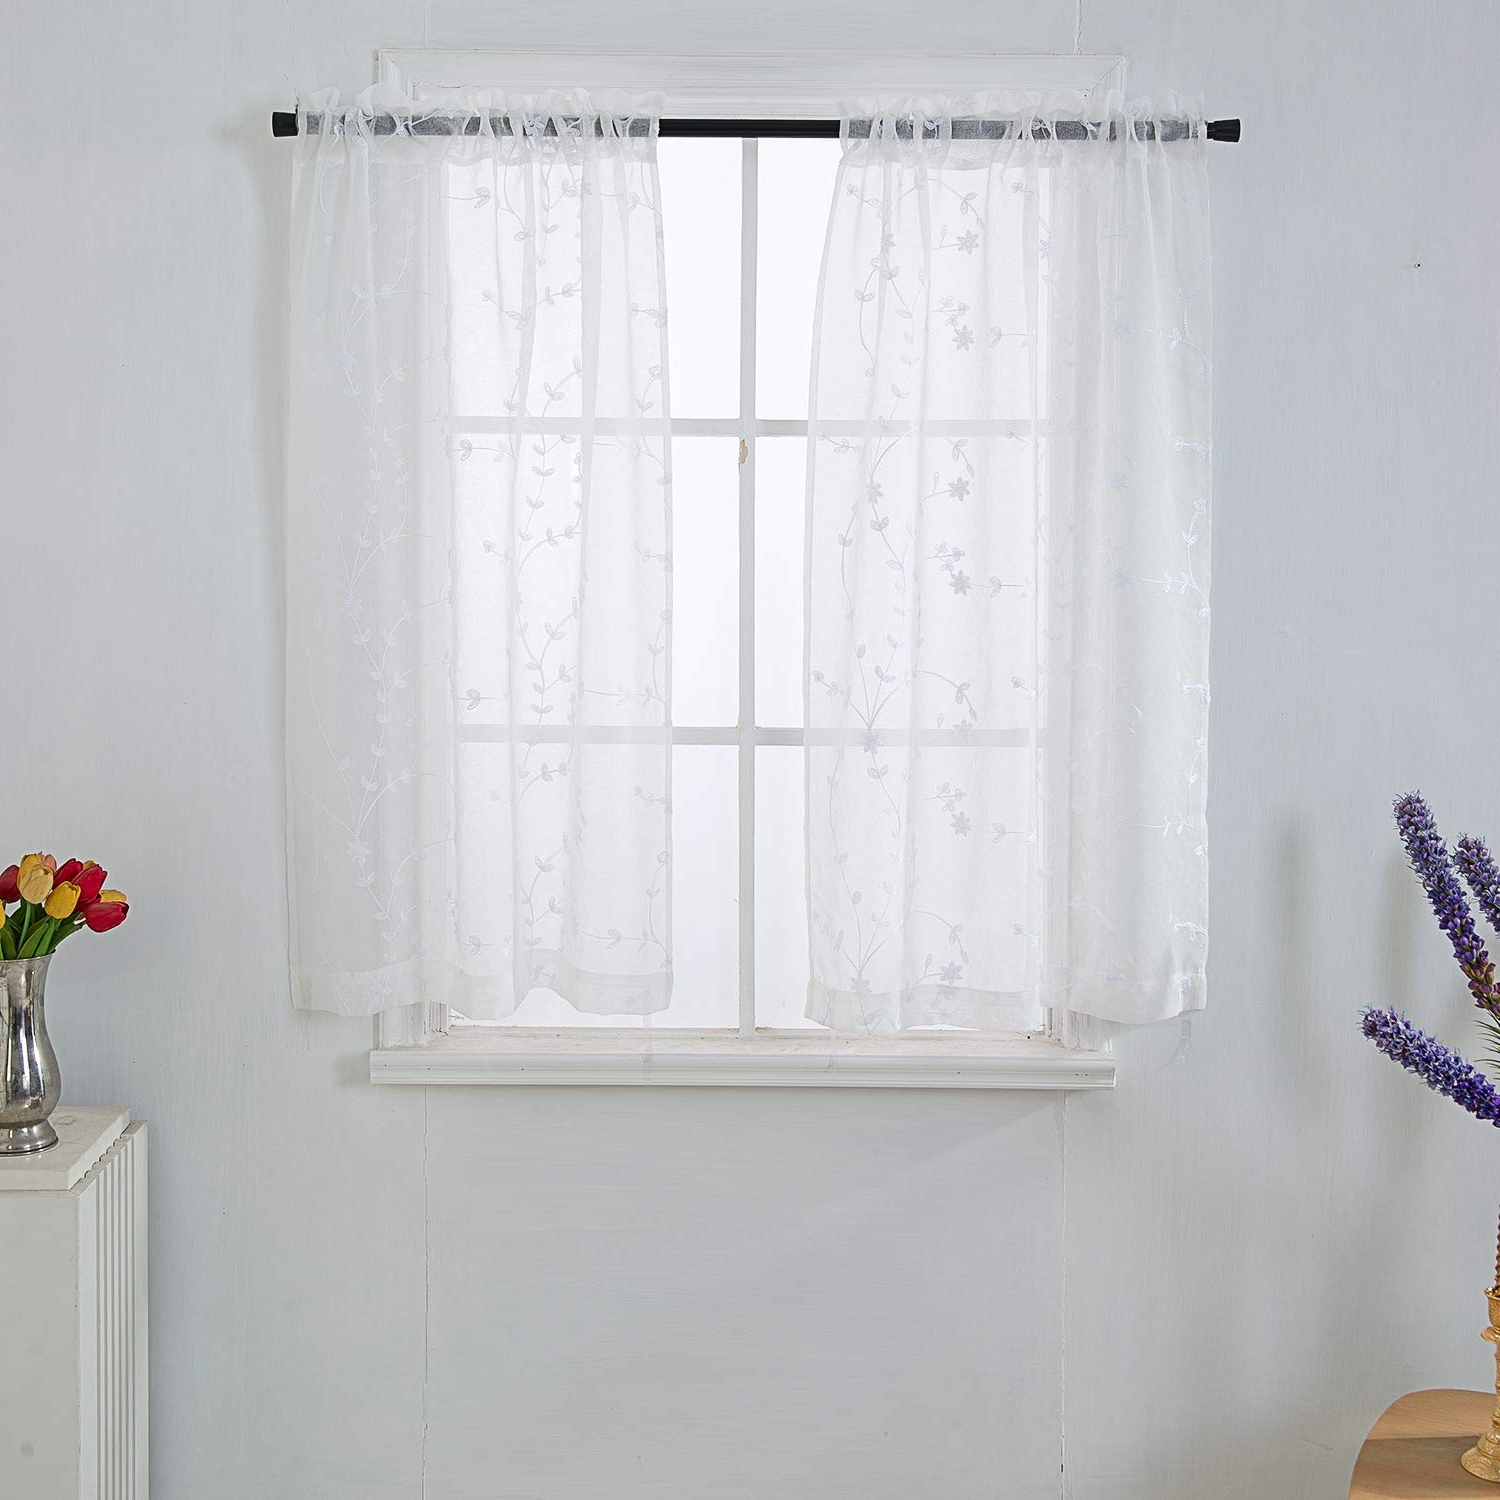 Touch Of Spring 24 Inch Tier Pairs Intended For Best And Newest Sheer White Valance Floral Embroidered Window Tiers Pair Rod Pocket Window  Curtain Valance White On Floral Pattern 34X36 Inch 2 Panels Set (View 16 of 20)